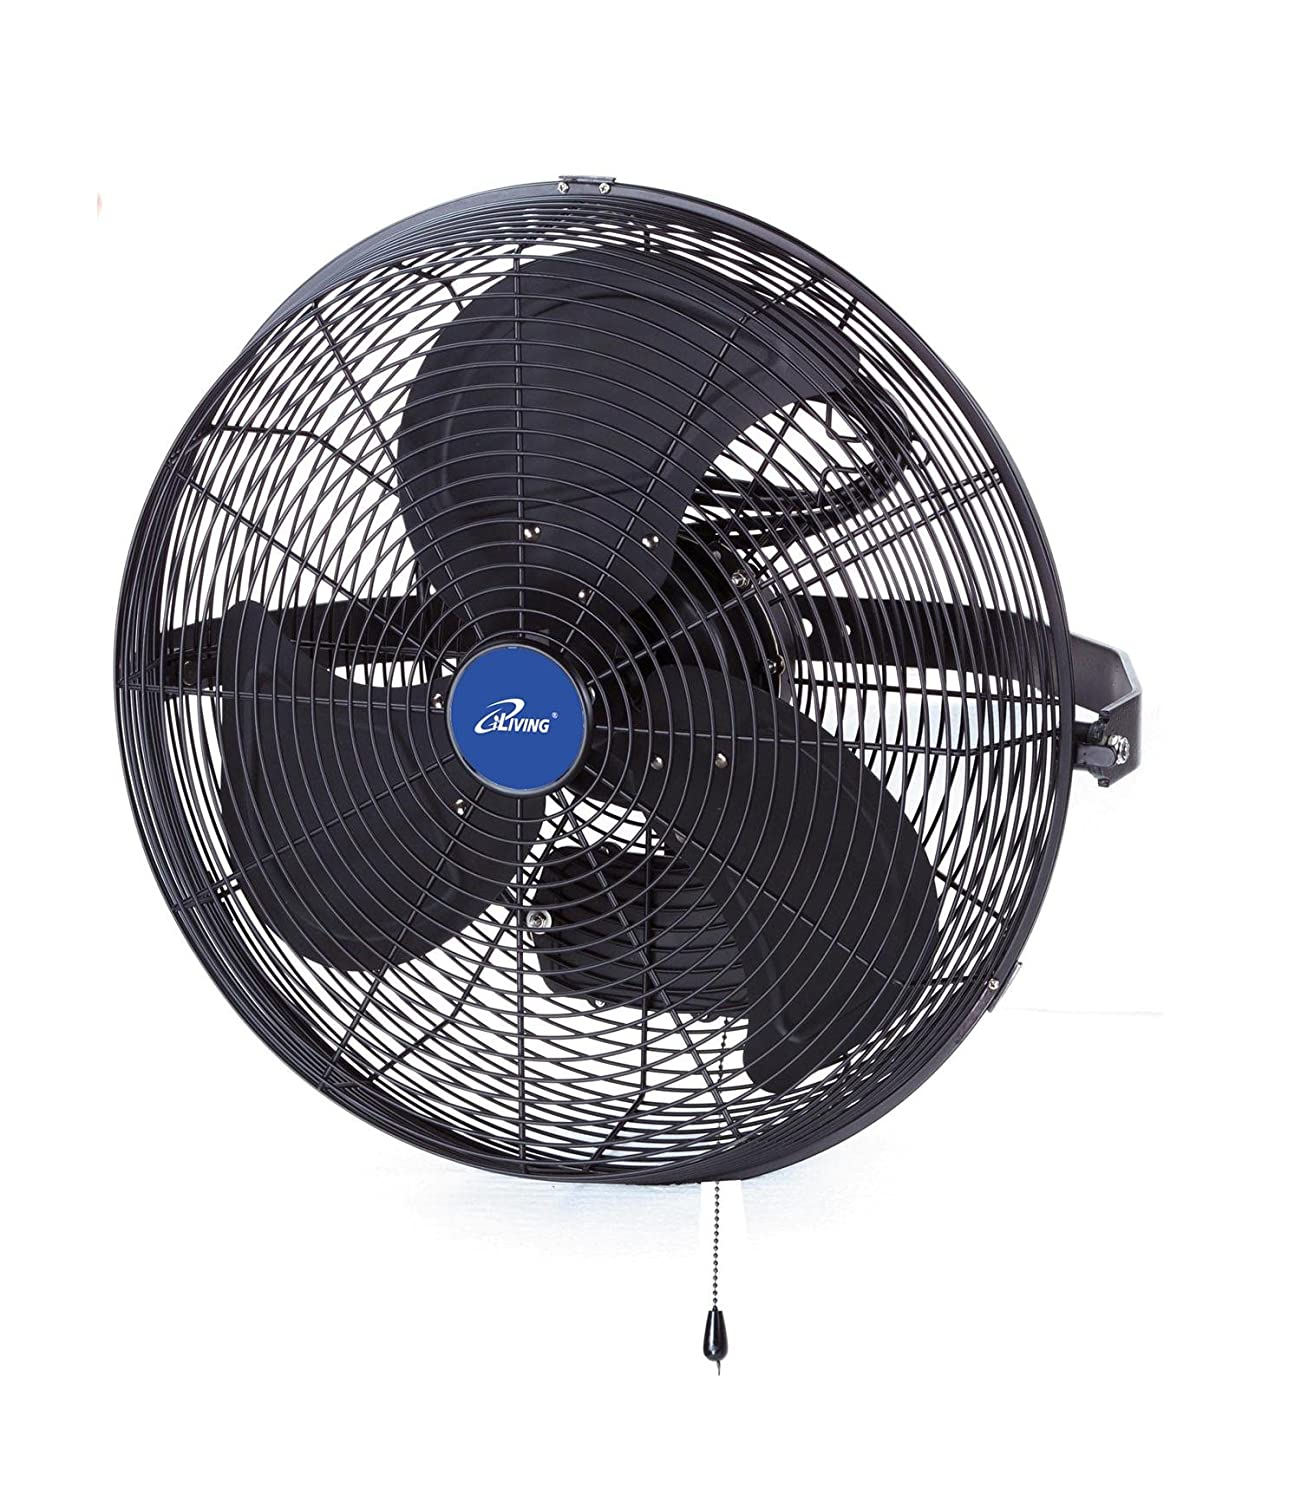 "iLIVING ILG8E14-15 Wall Mount Outdoor Waterproof Fan, 14"", Black"